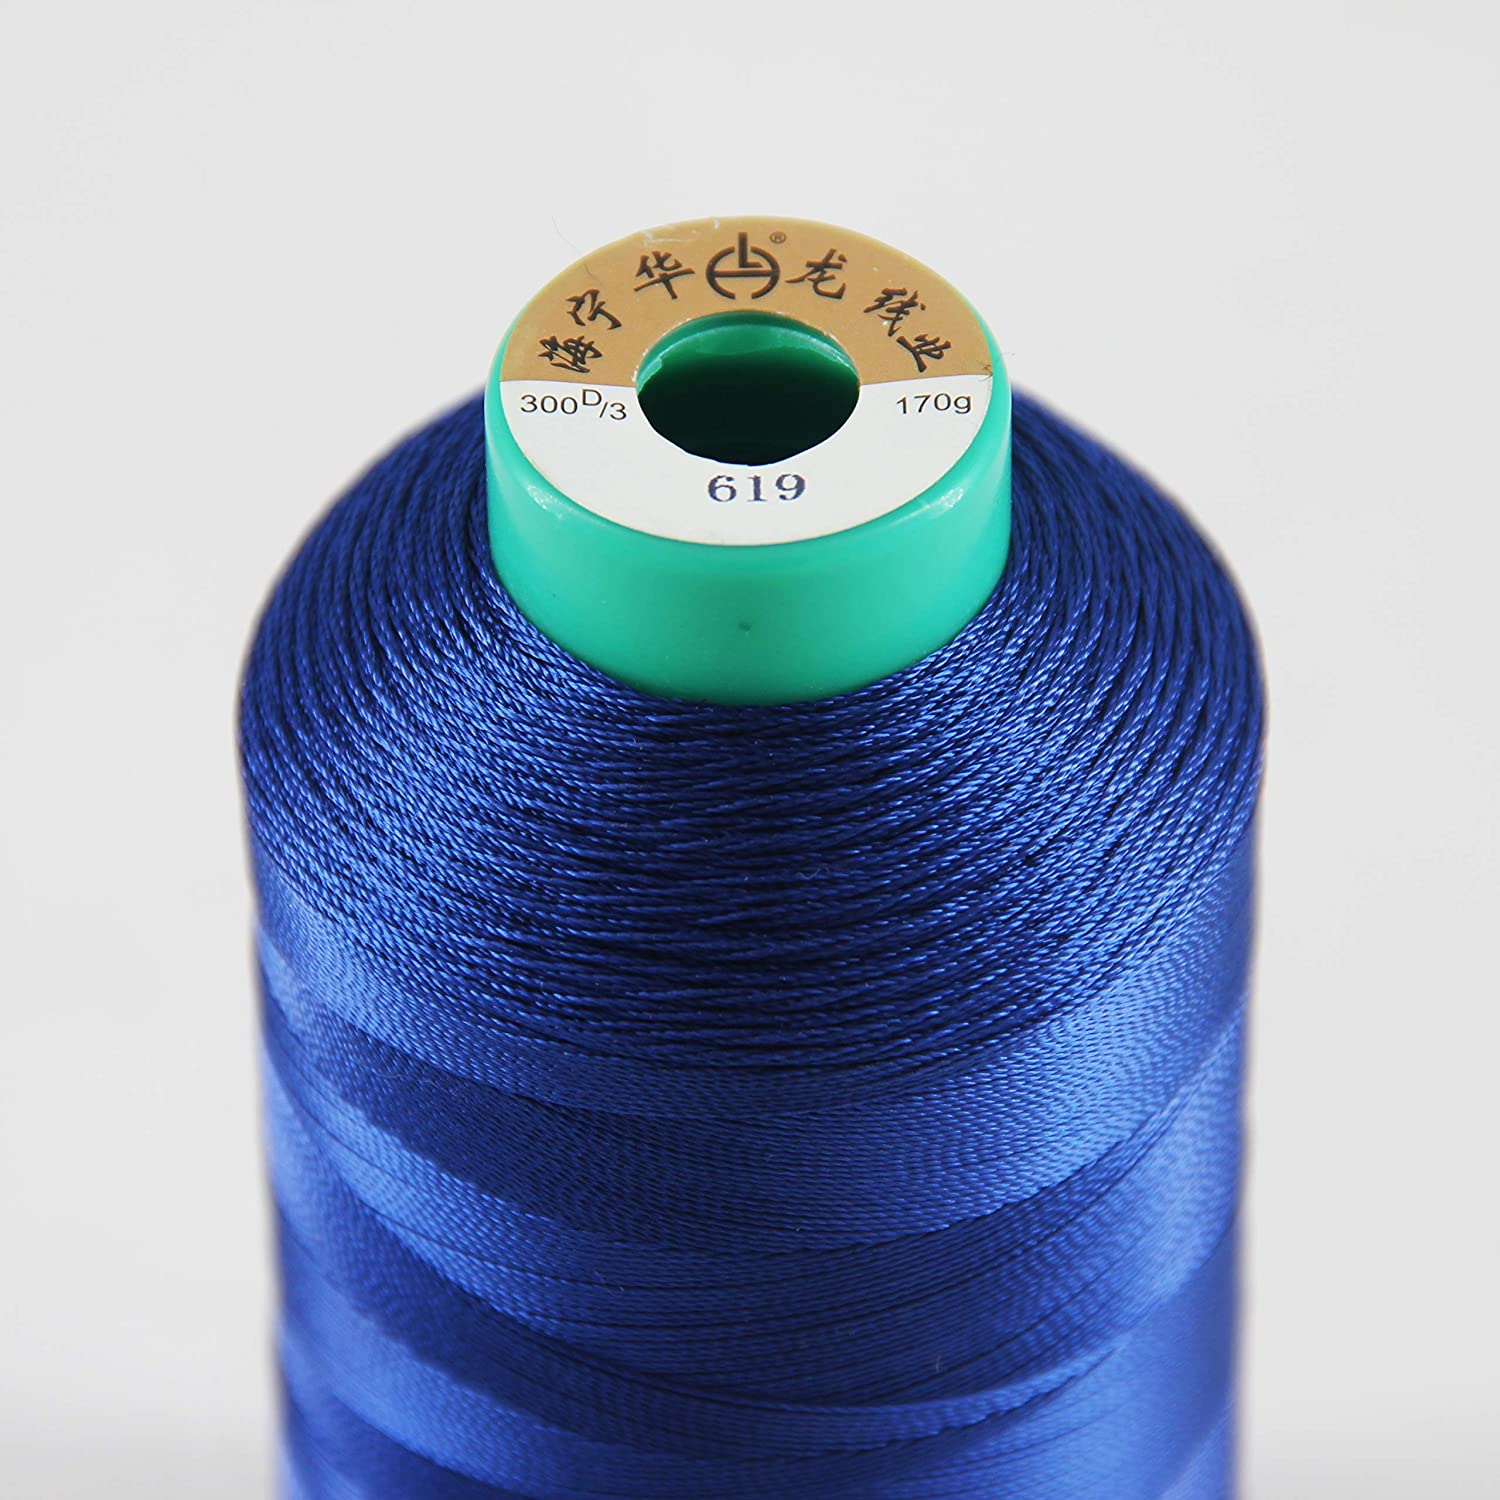 Purses Upholstery Beading Yellow High Strength Polyester Thread Nylon Sewing Thread 1800 Yard Size T70#69 210D//3 for Weaves Jeans and Weaving Hair Leather Drapery